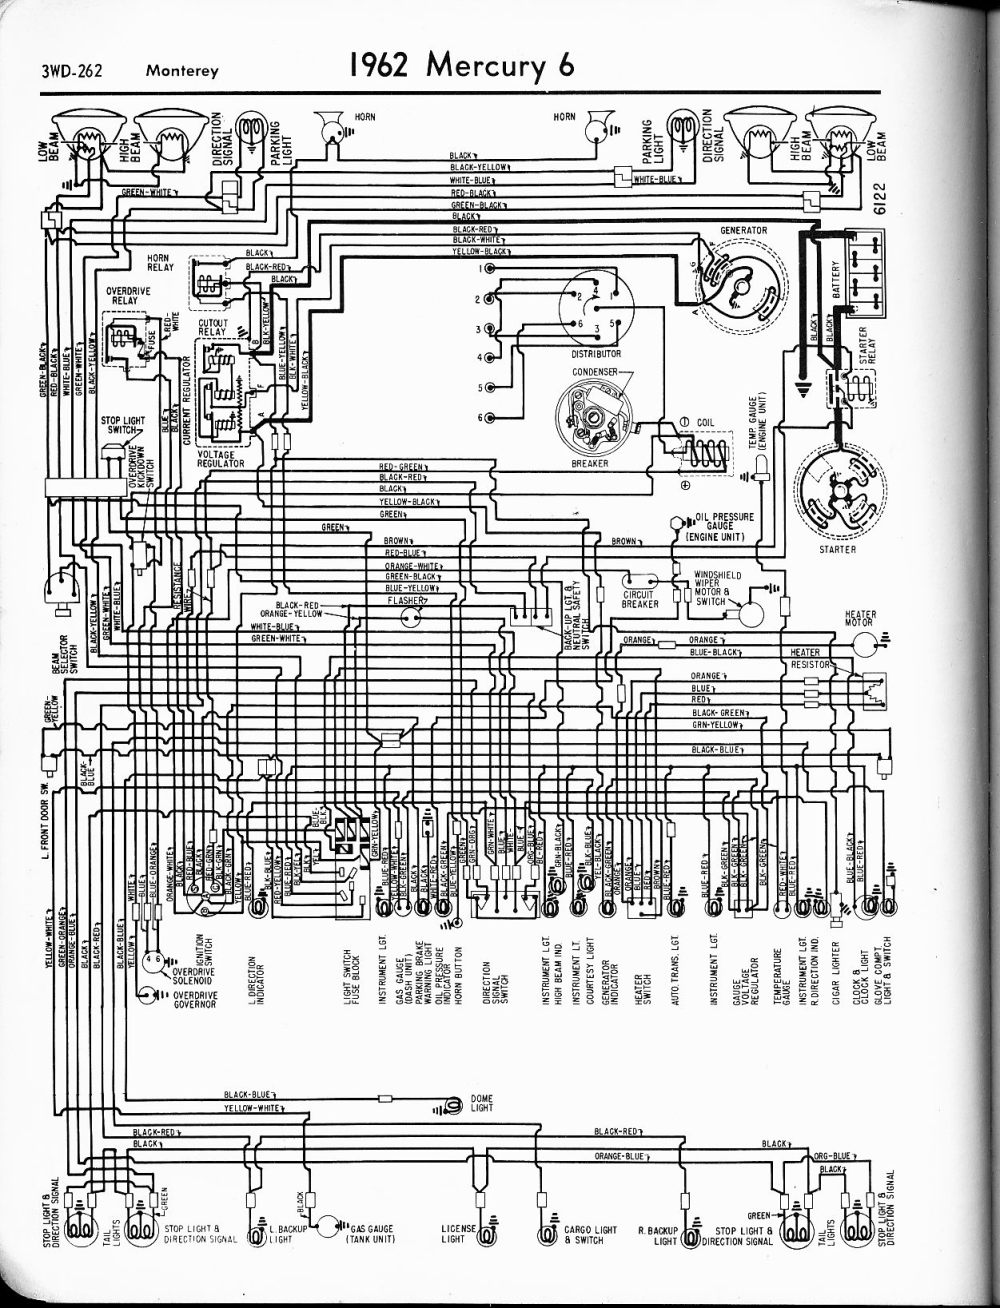 medium resolution of 1966 newport wiring diagram online wiring diagram1966 chrysler newport wiring diagram best wiring library1962 mercury comet